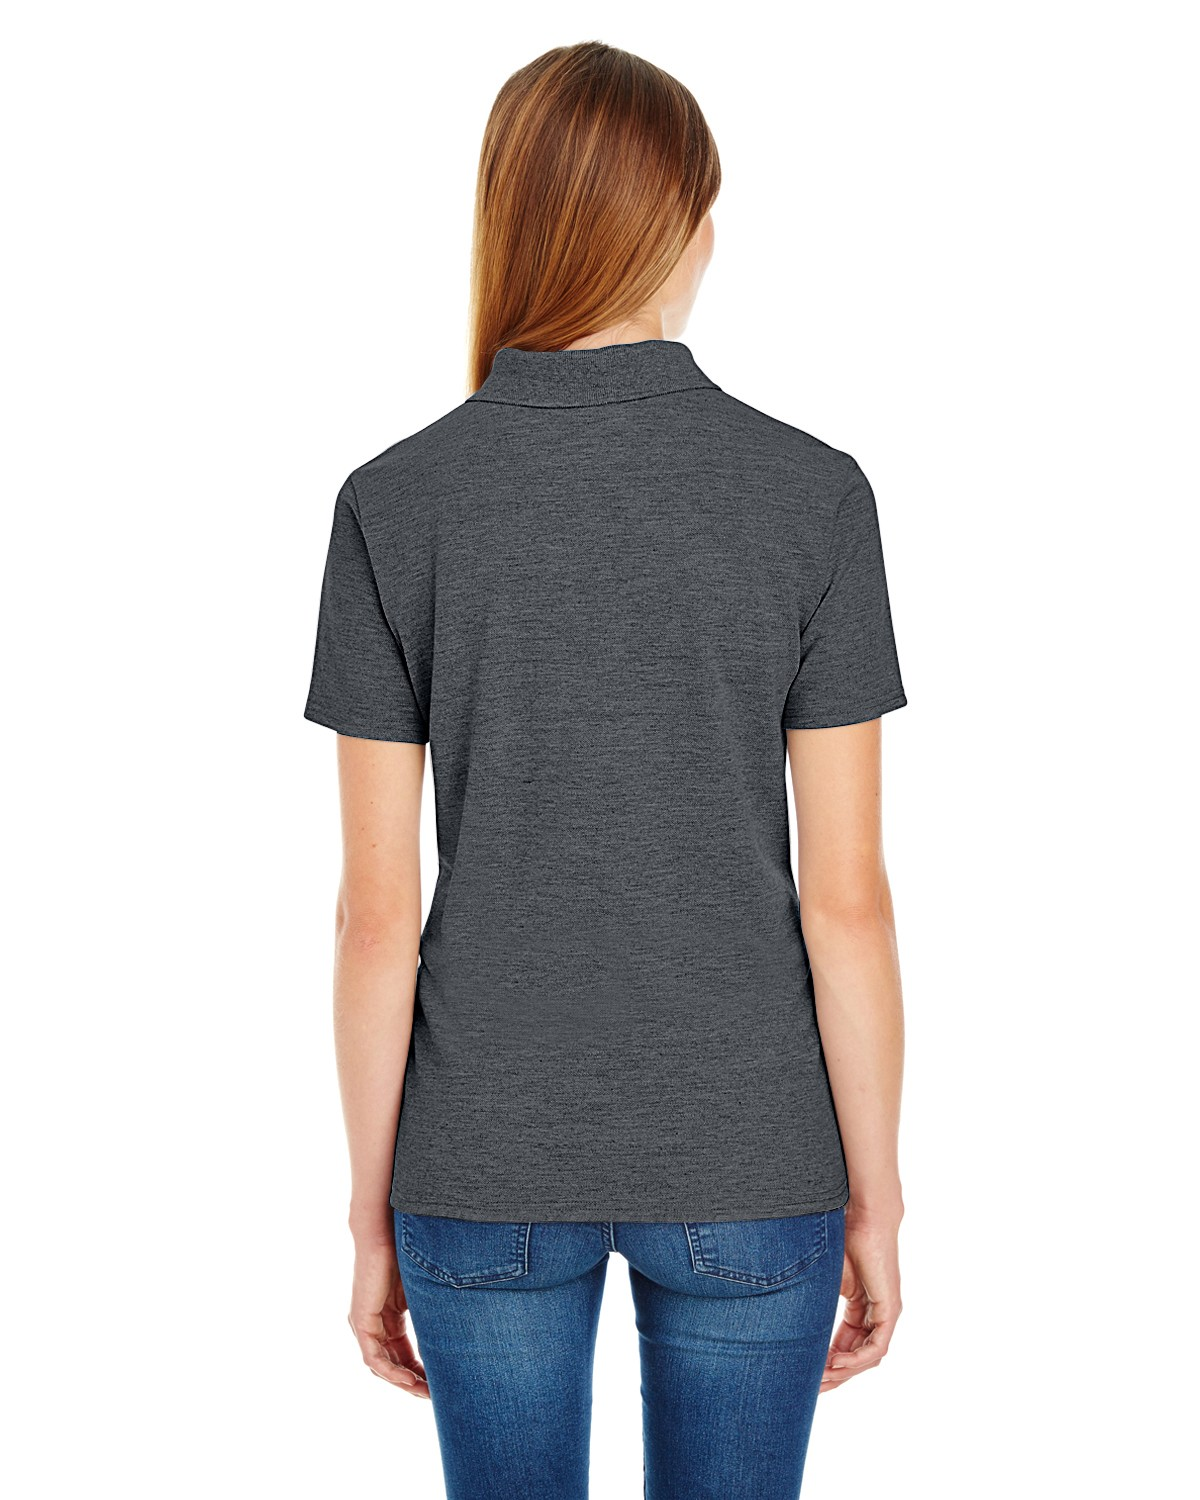 035P Hanes CHARCOAL HEATHER